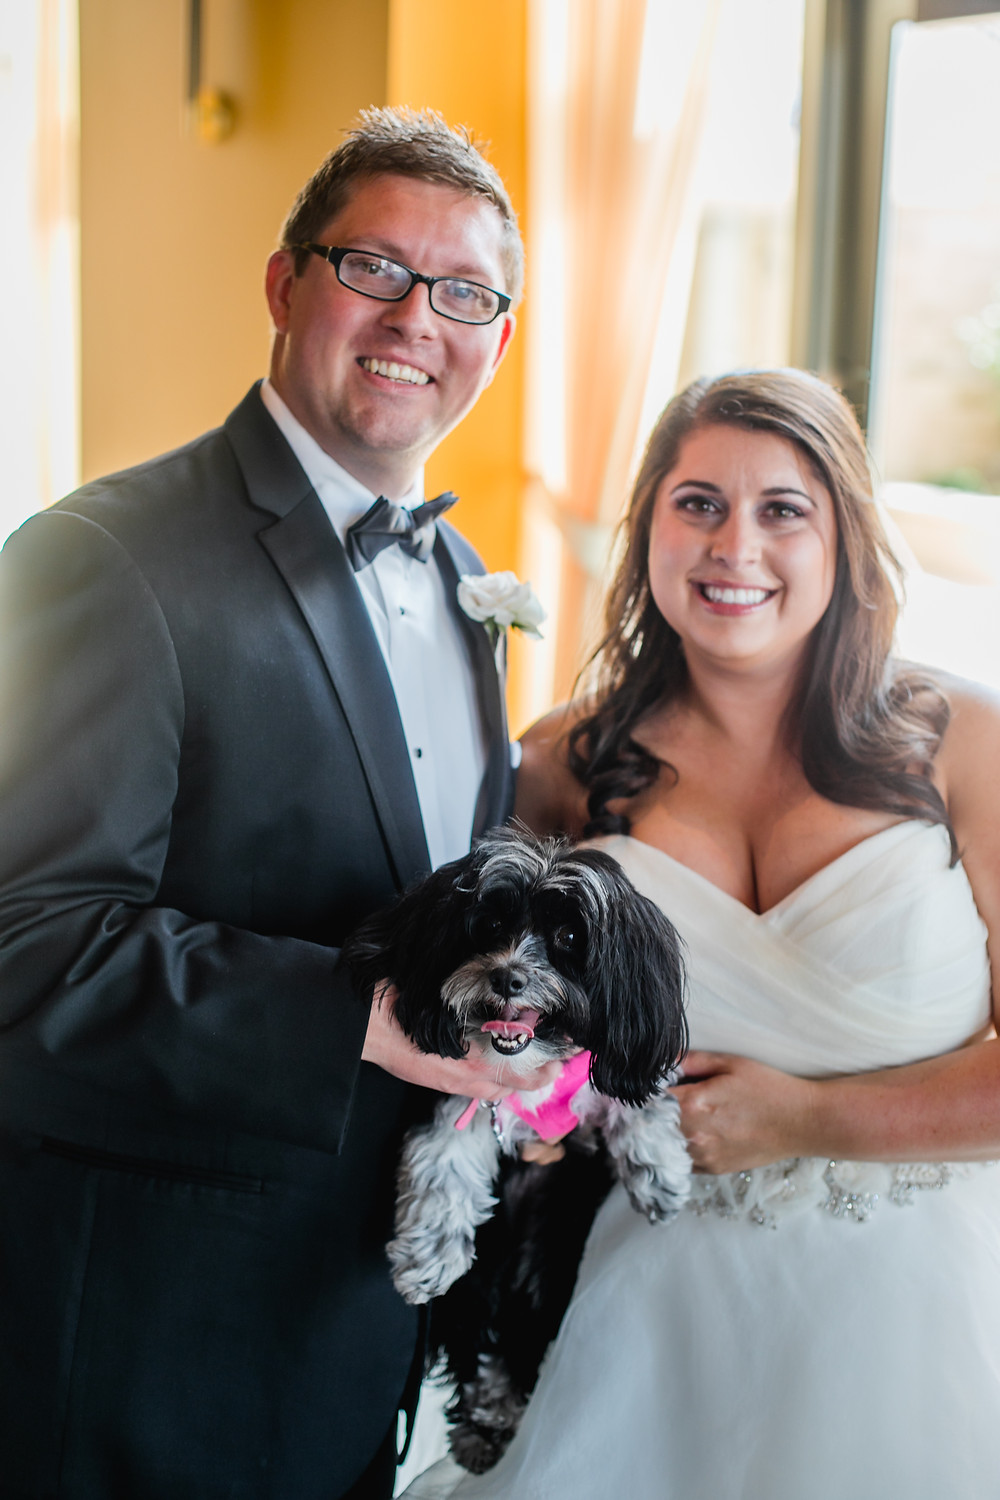 Biscuit was at our wedding!